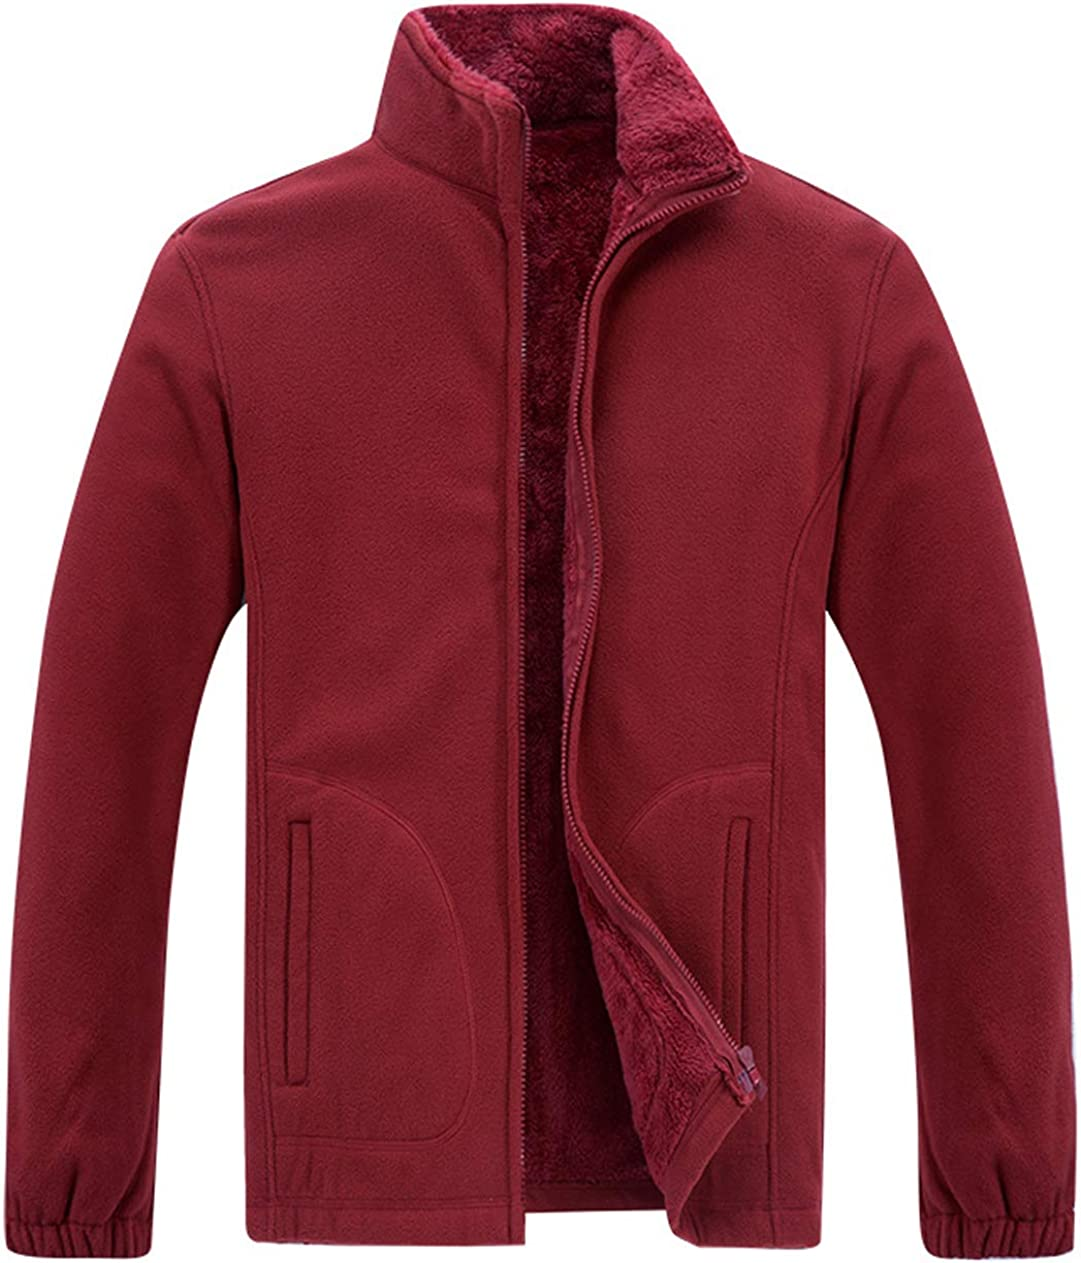 ebossy Fort Worth Mall Directly managed store Men's Essential Collar Winter Zip Full Lined Ultra Sherpa